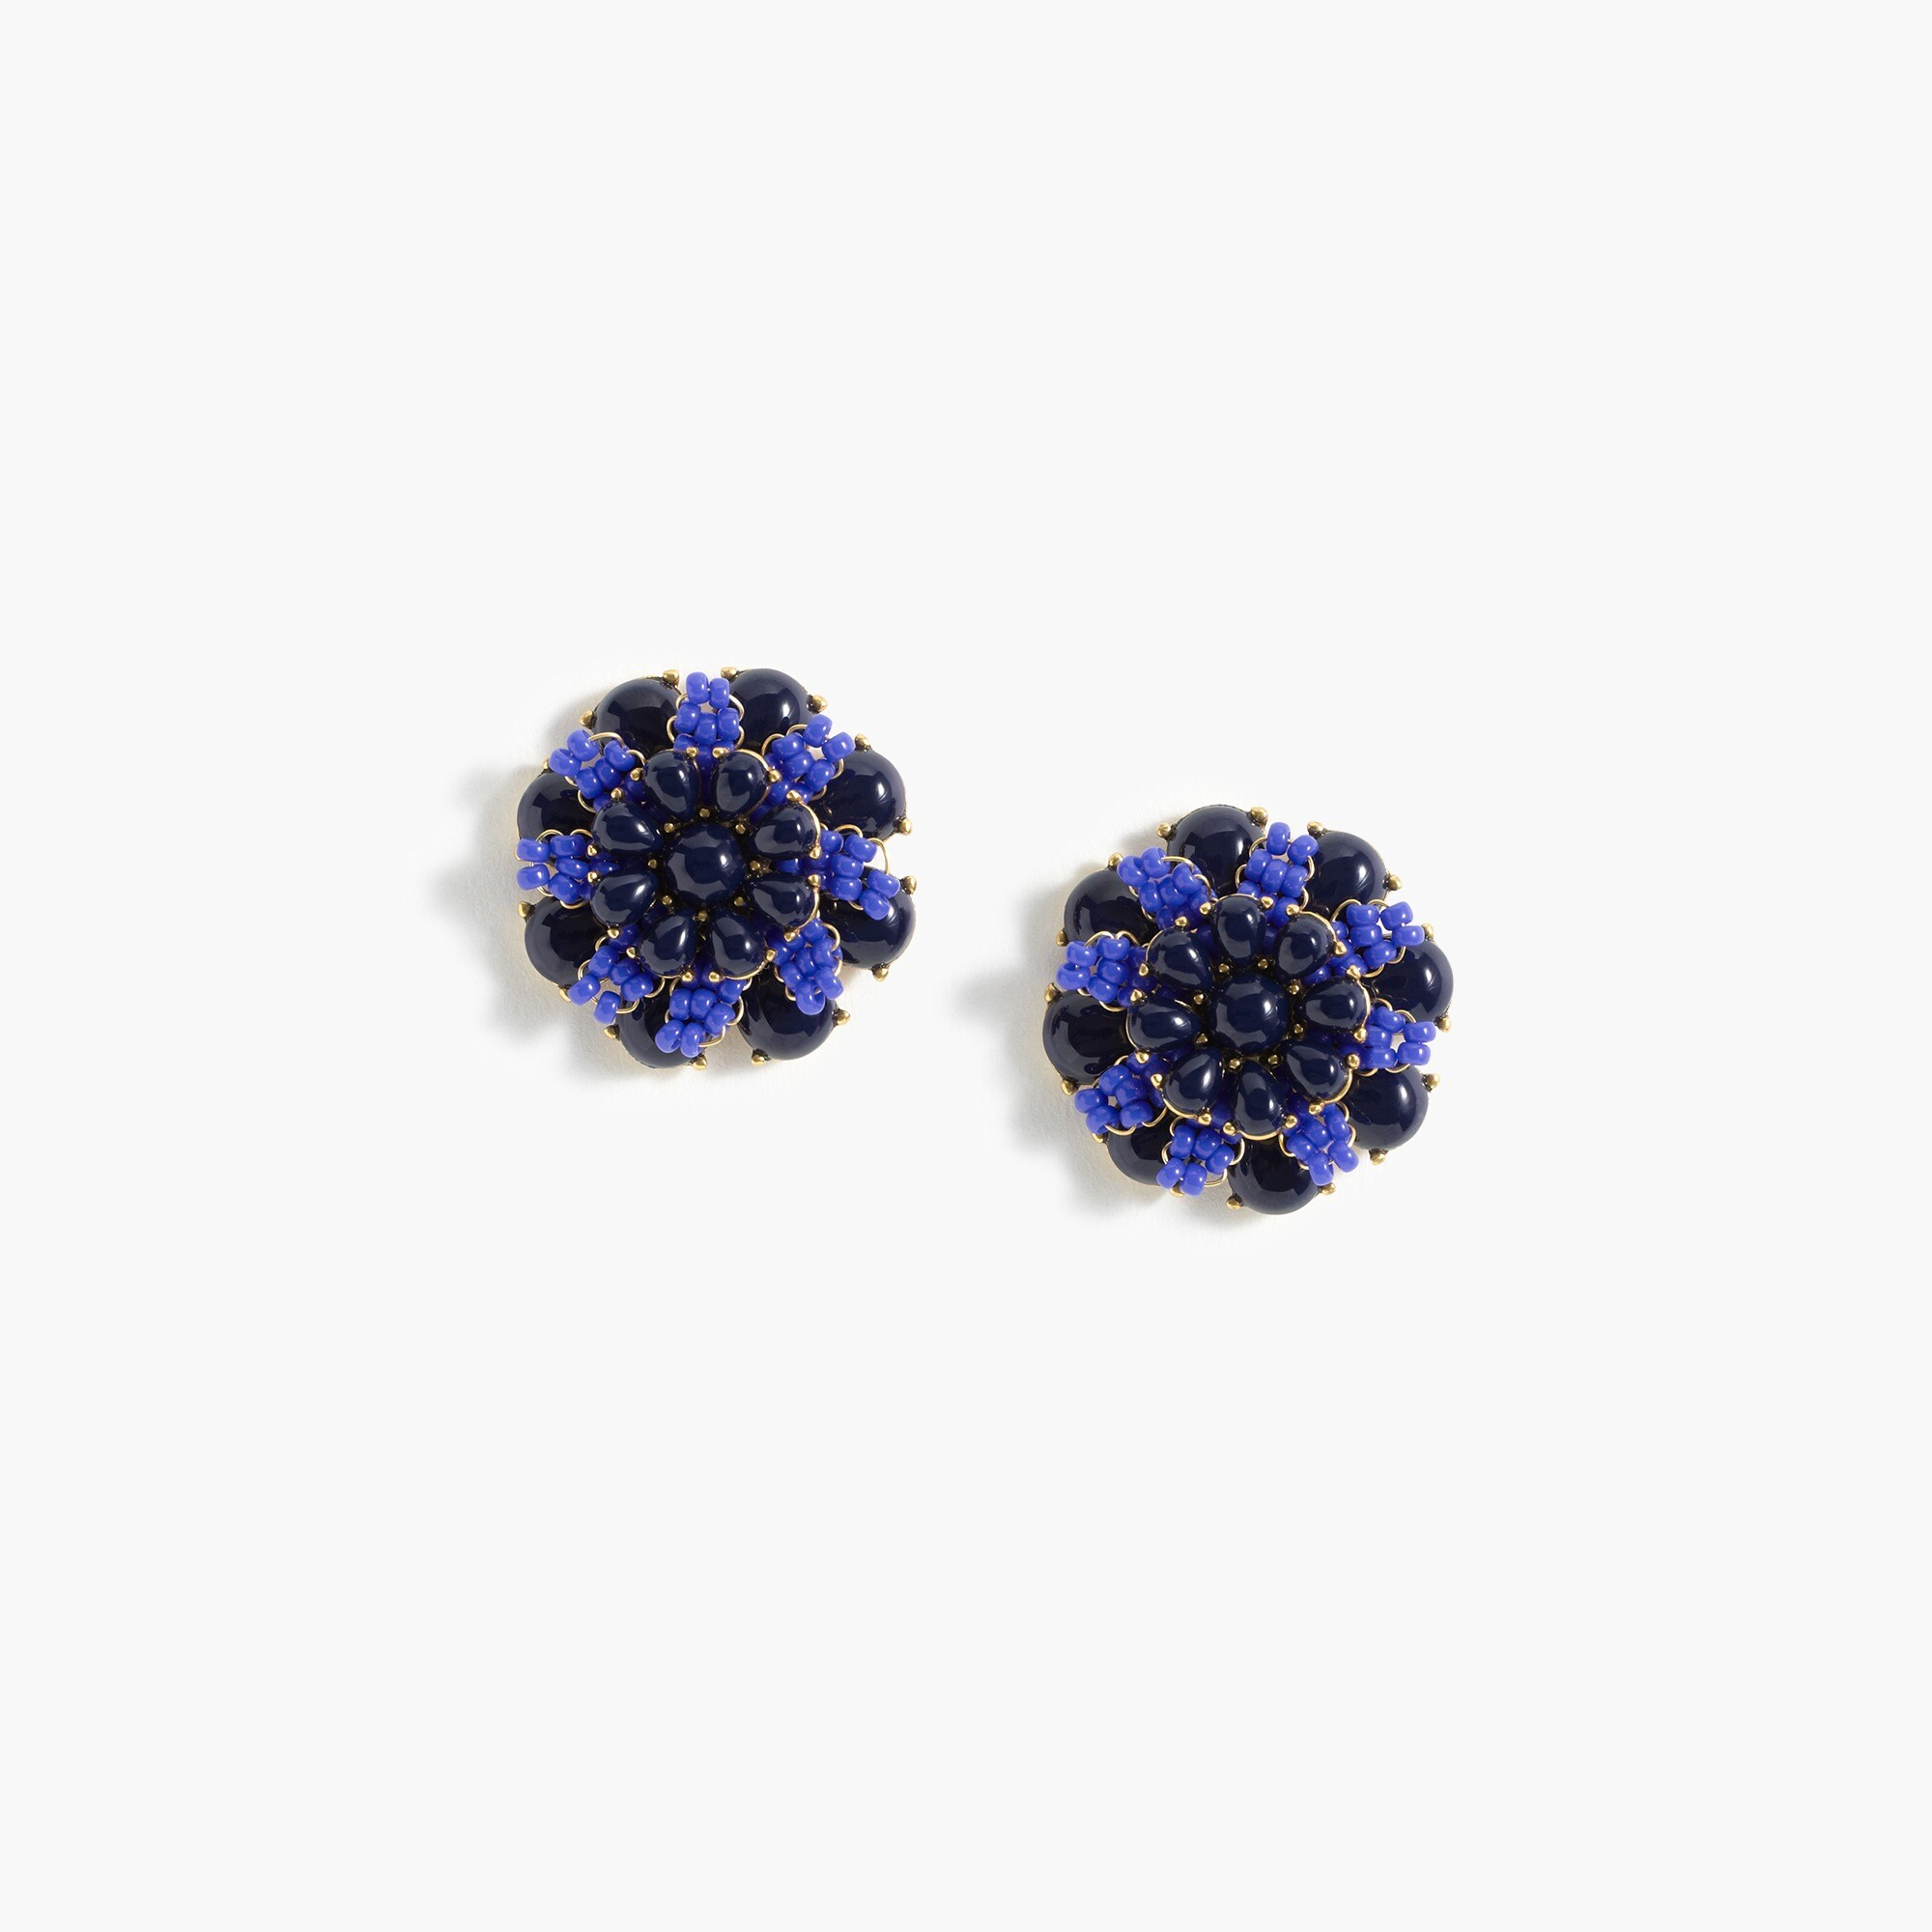 blackberry earrings : women's earrings